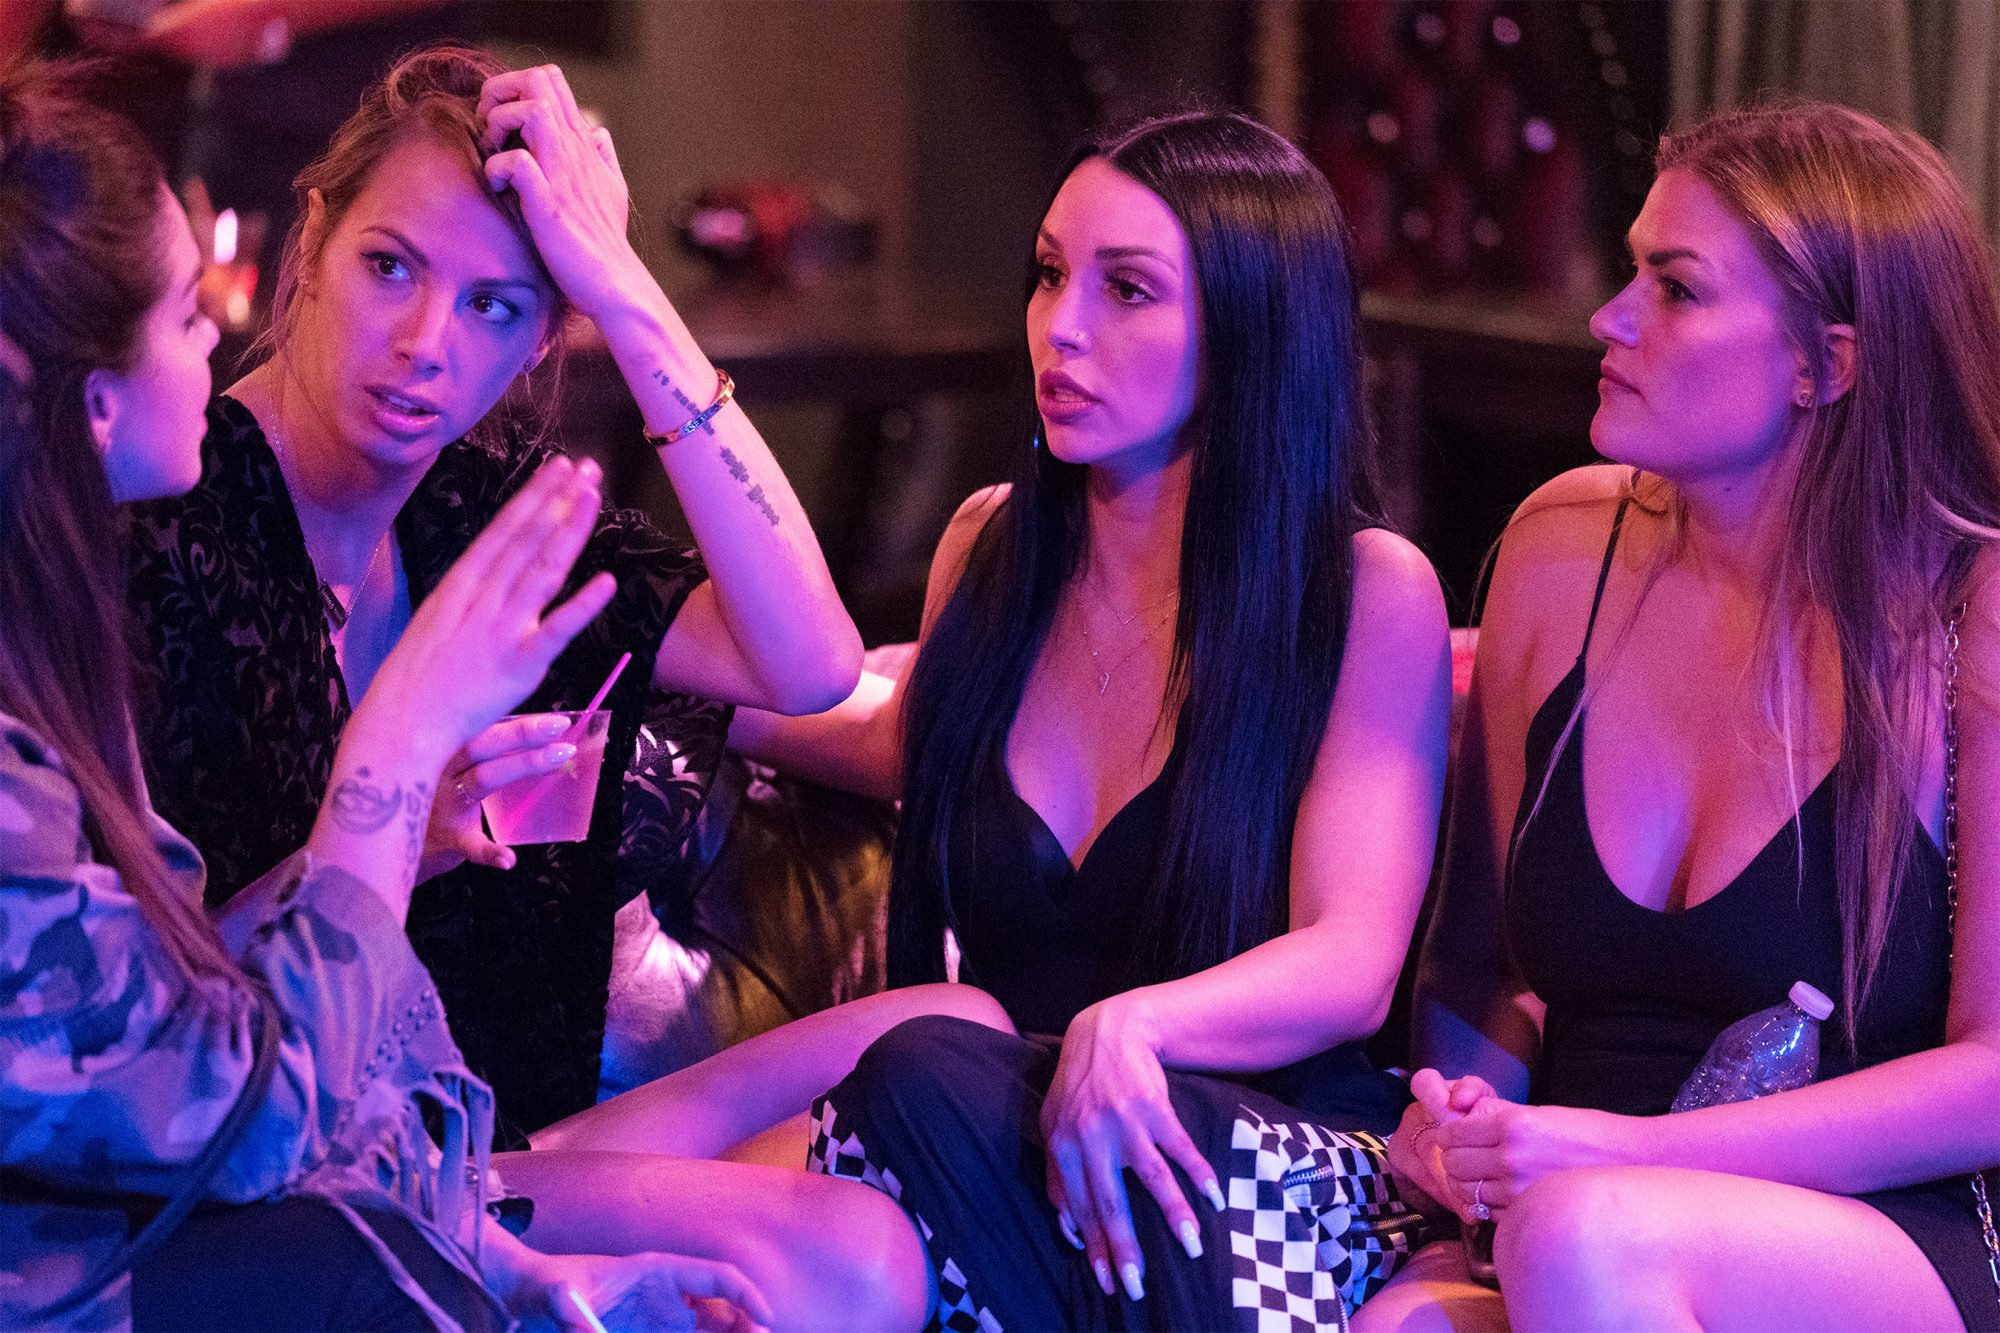 Vanderpump Rules - Season 7